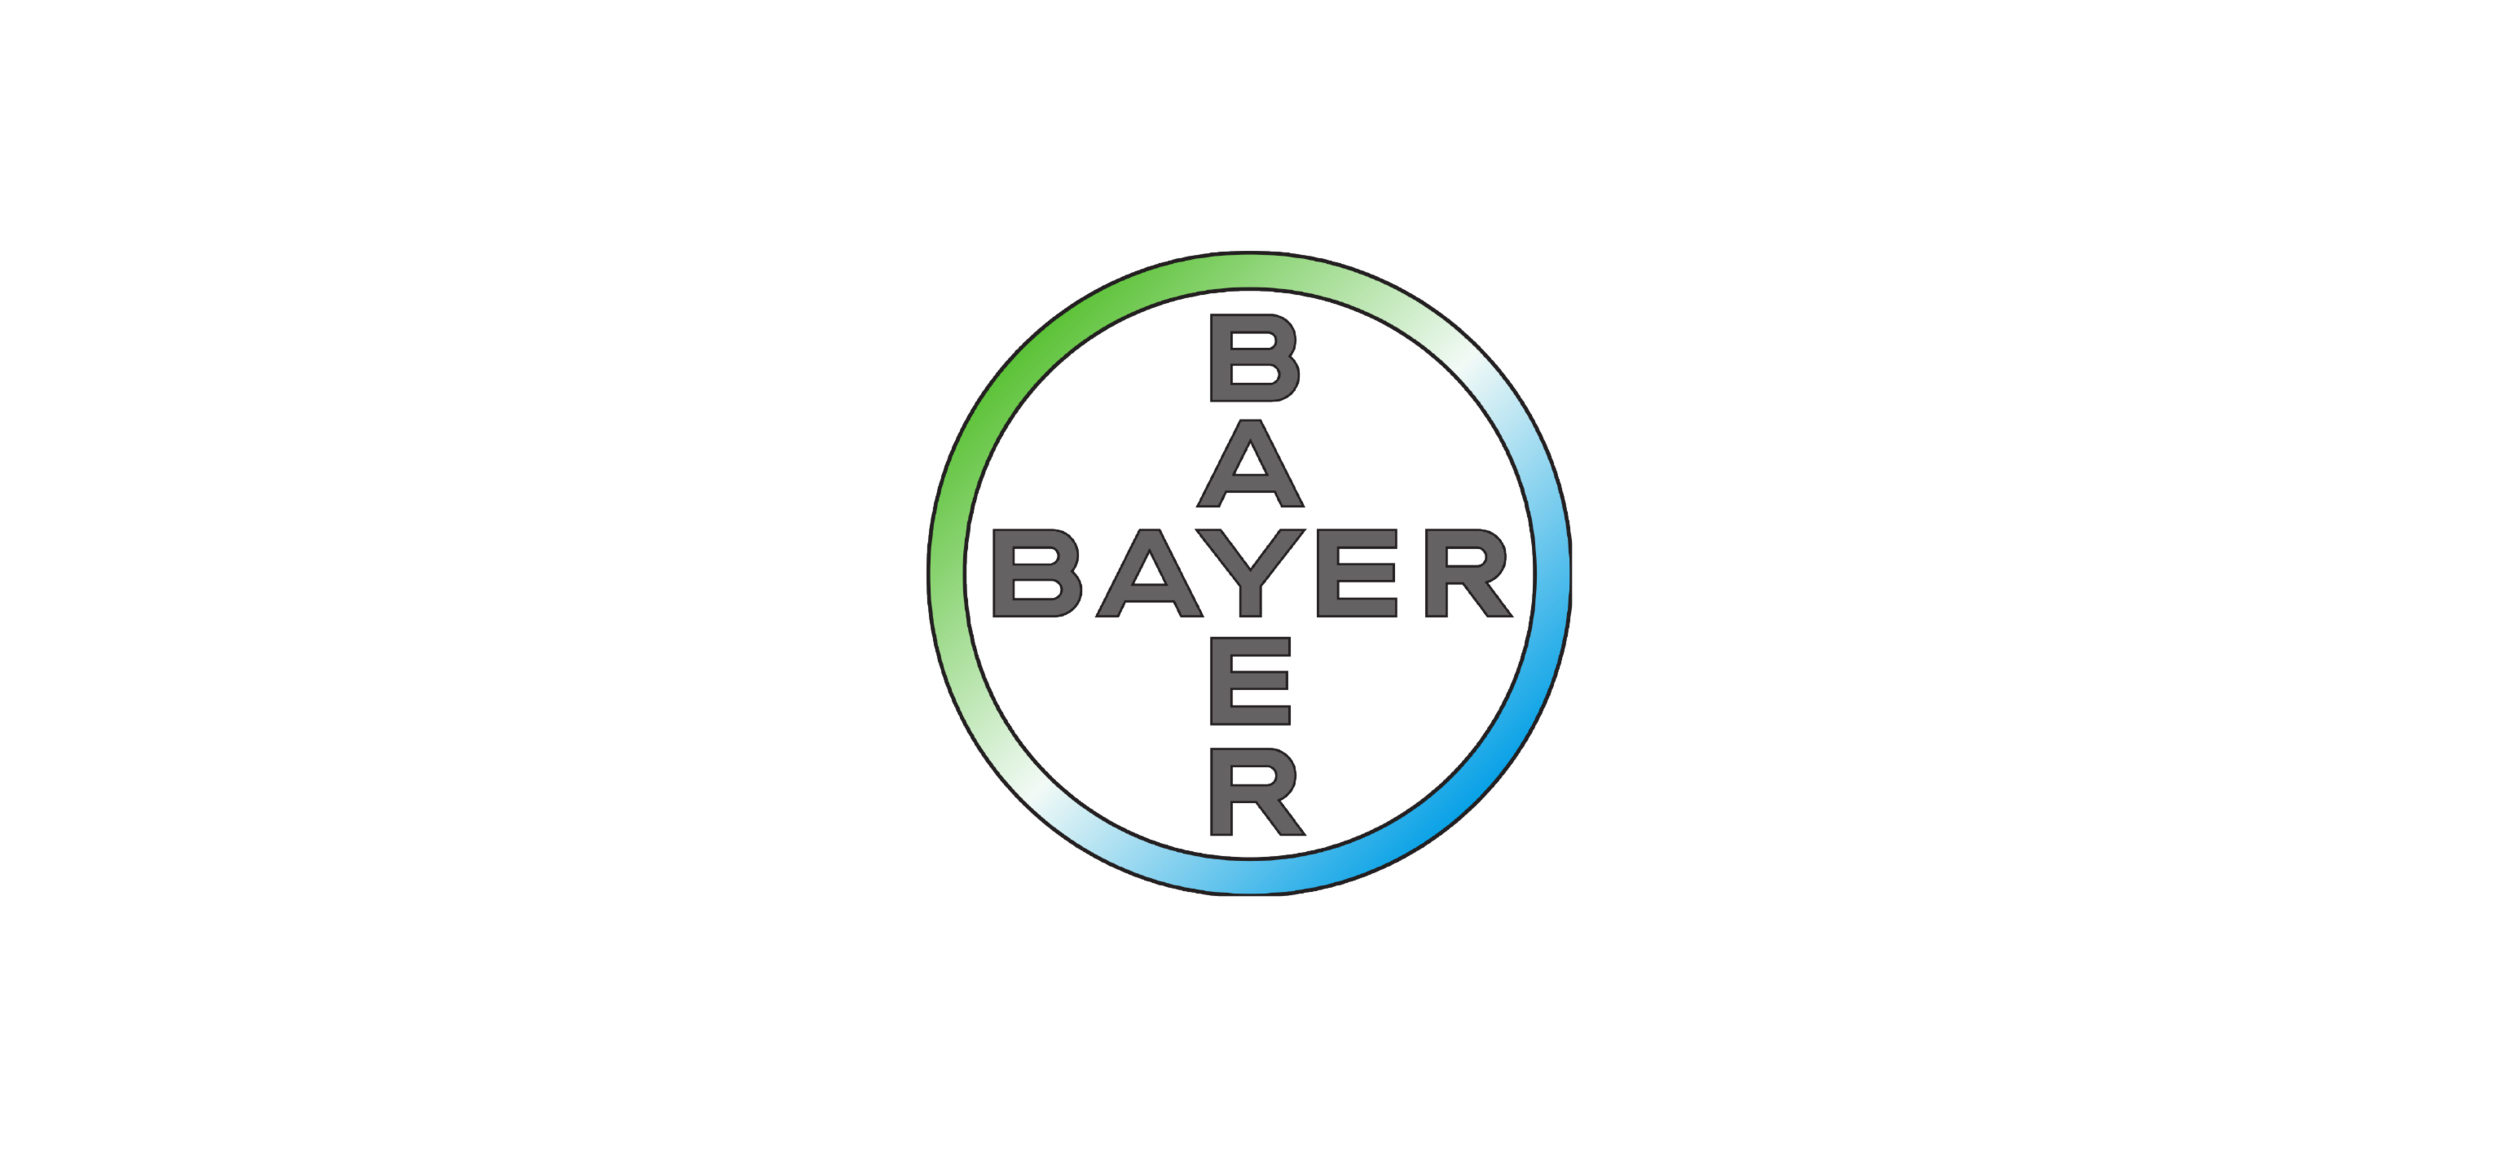 bayer-01.png